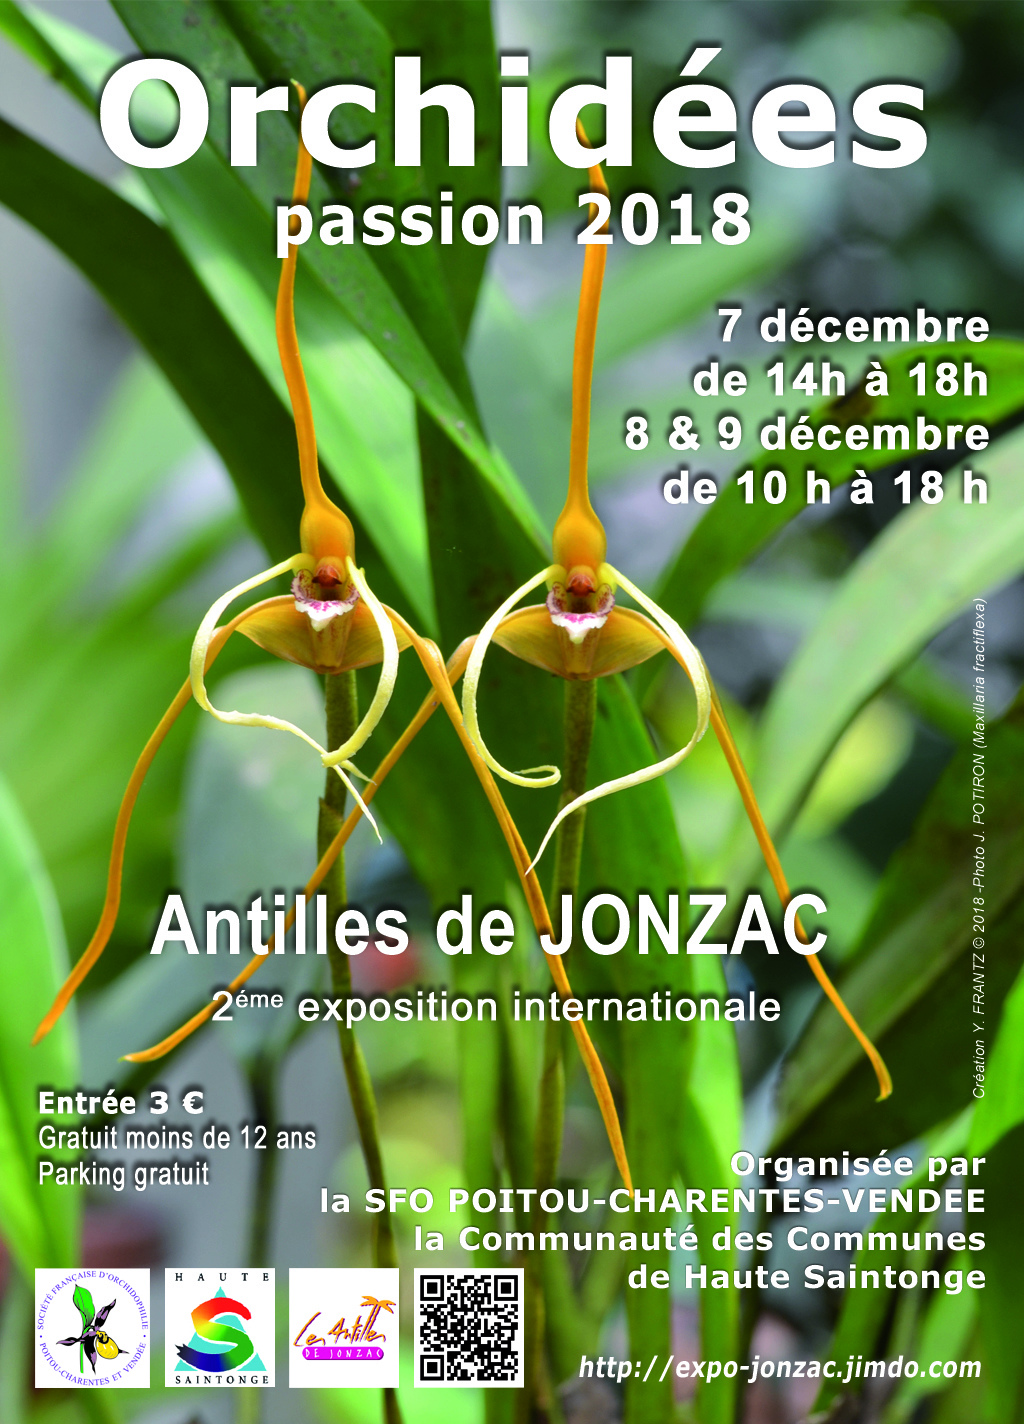 2eme Exposition internationale CHARENTE MARITIME Décembre 2018 Image13